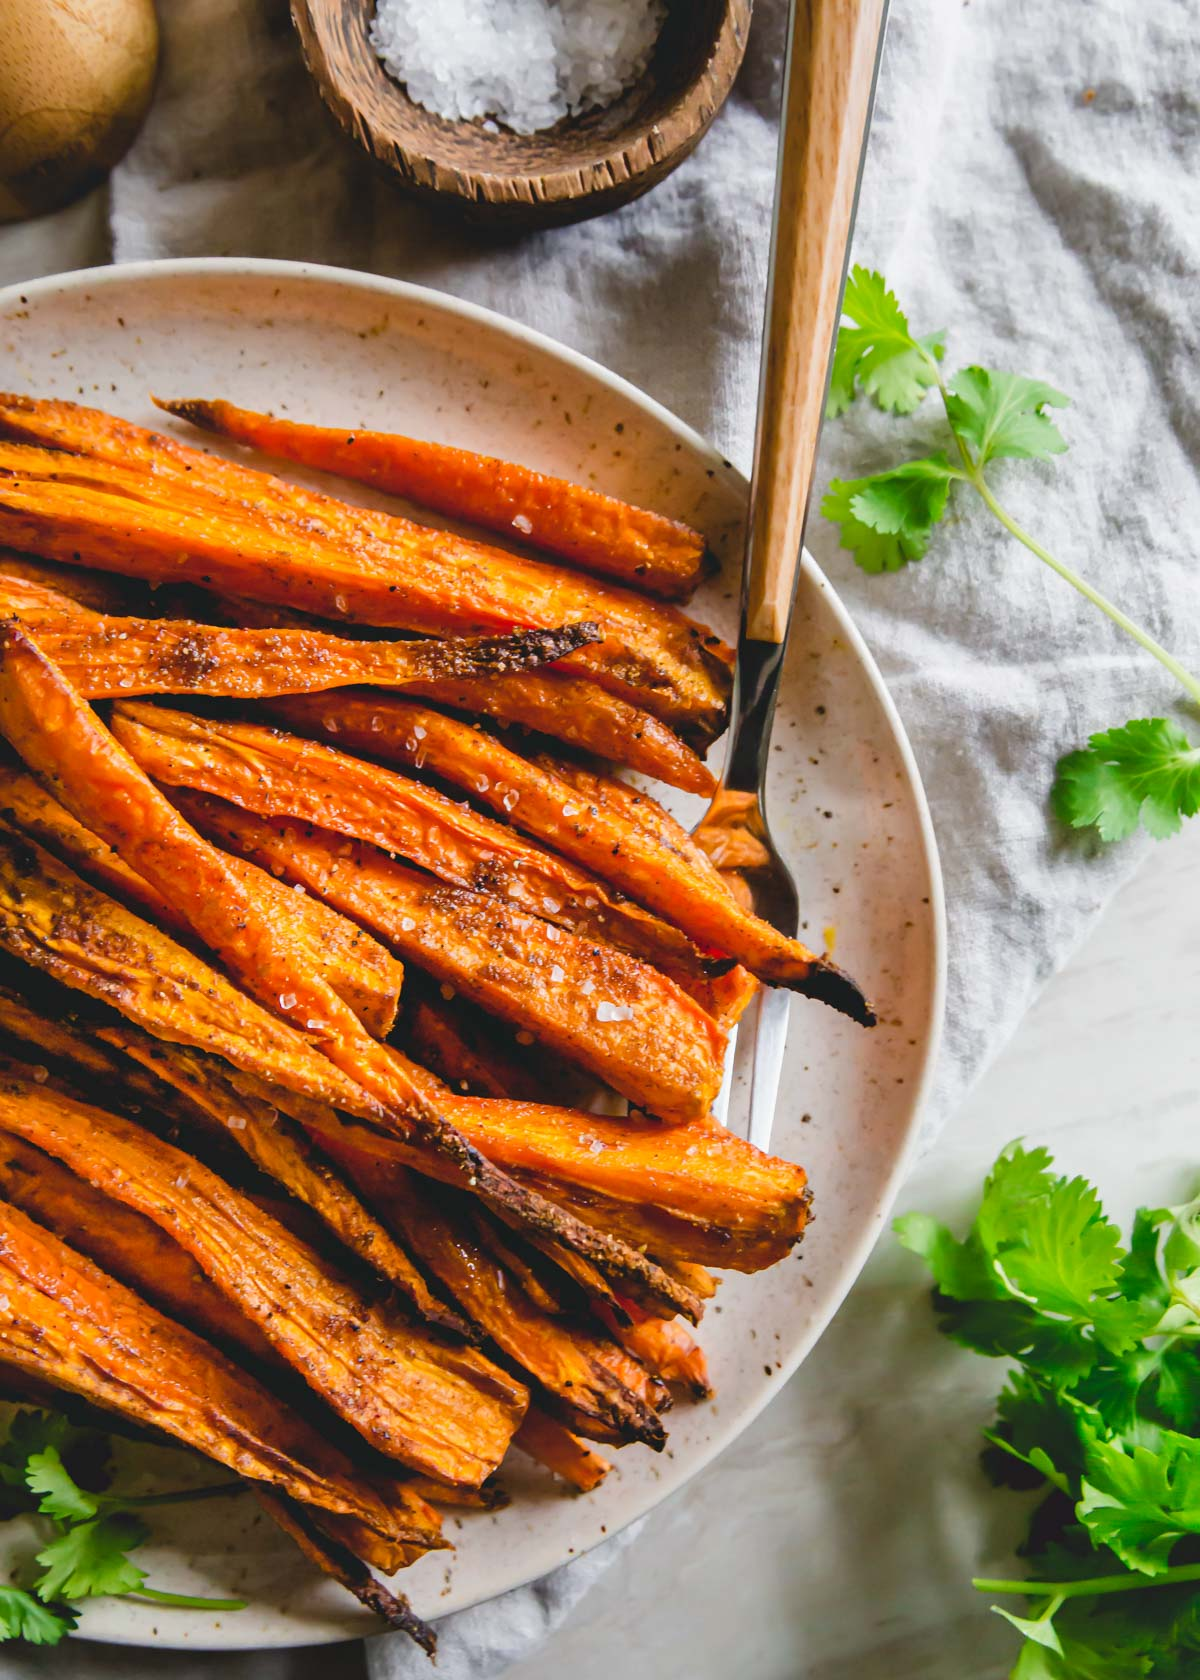 If simple is your goal, these roasted air fryer carrots are the perfect side dish! Just 20 minutes of cooking time and a handful of spices is all you need.